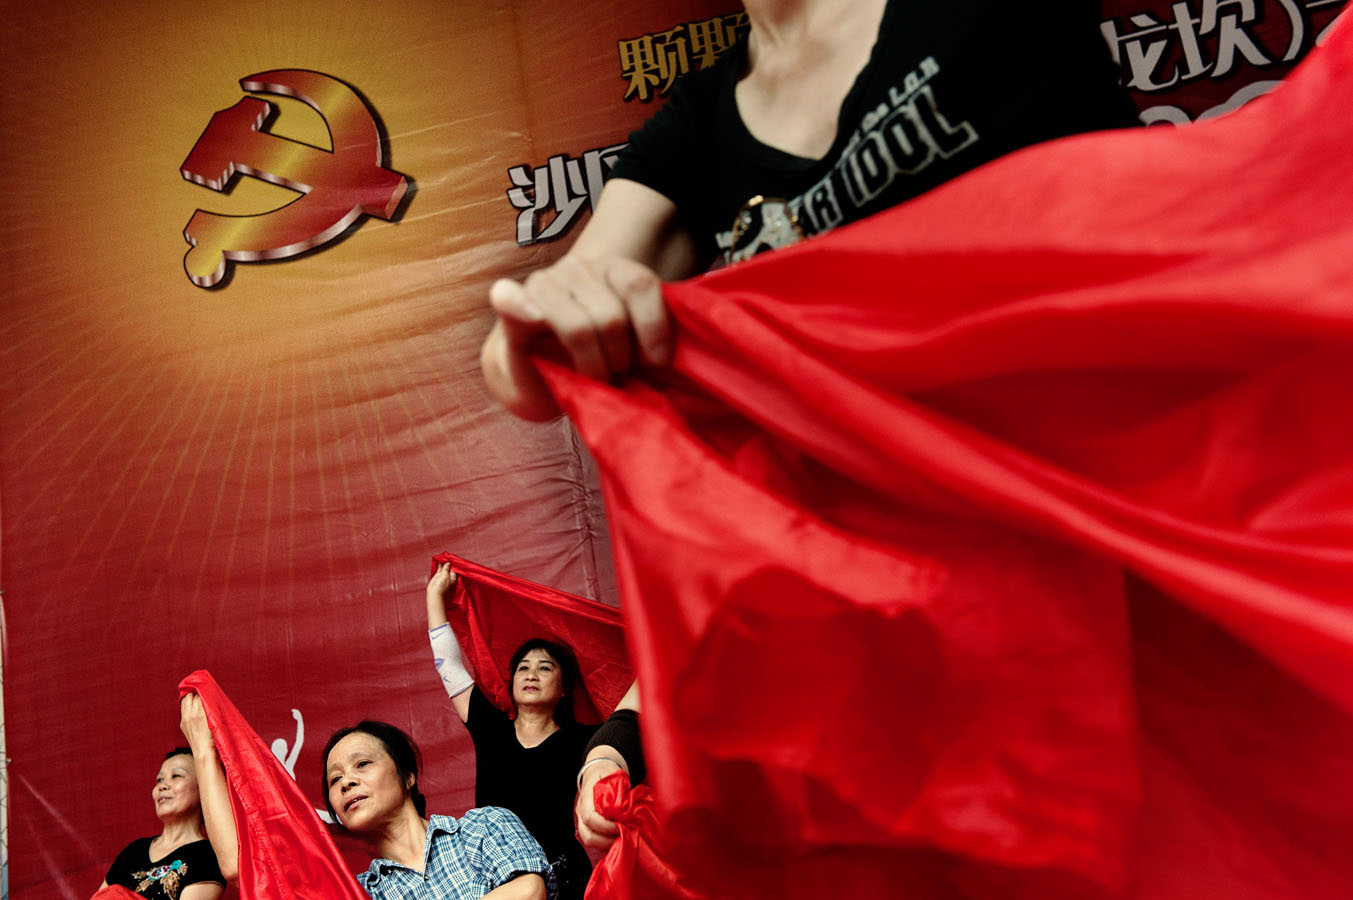 Volunteers rehearsing a revolutionary ballet in Chongqing during a campaign celebrating Mao and the revolution, initiated by local Party Secretary Bo Xilai in a bid to foster his image and popularity. Bo Xilai was subsequently arrested and condemend for corruption.